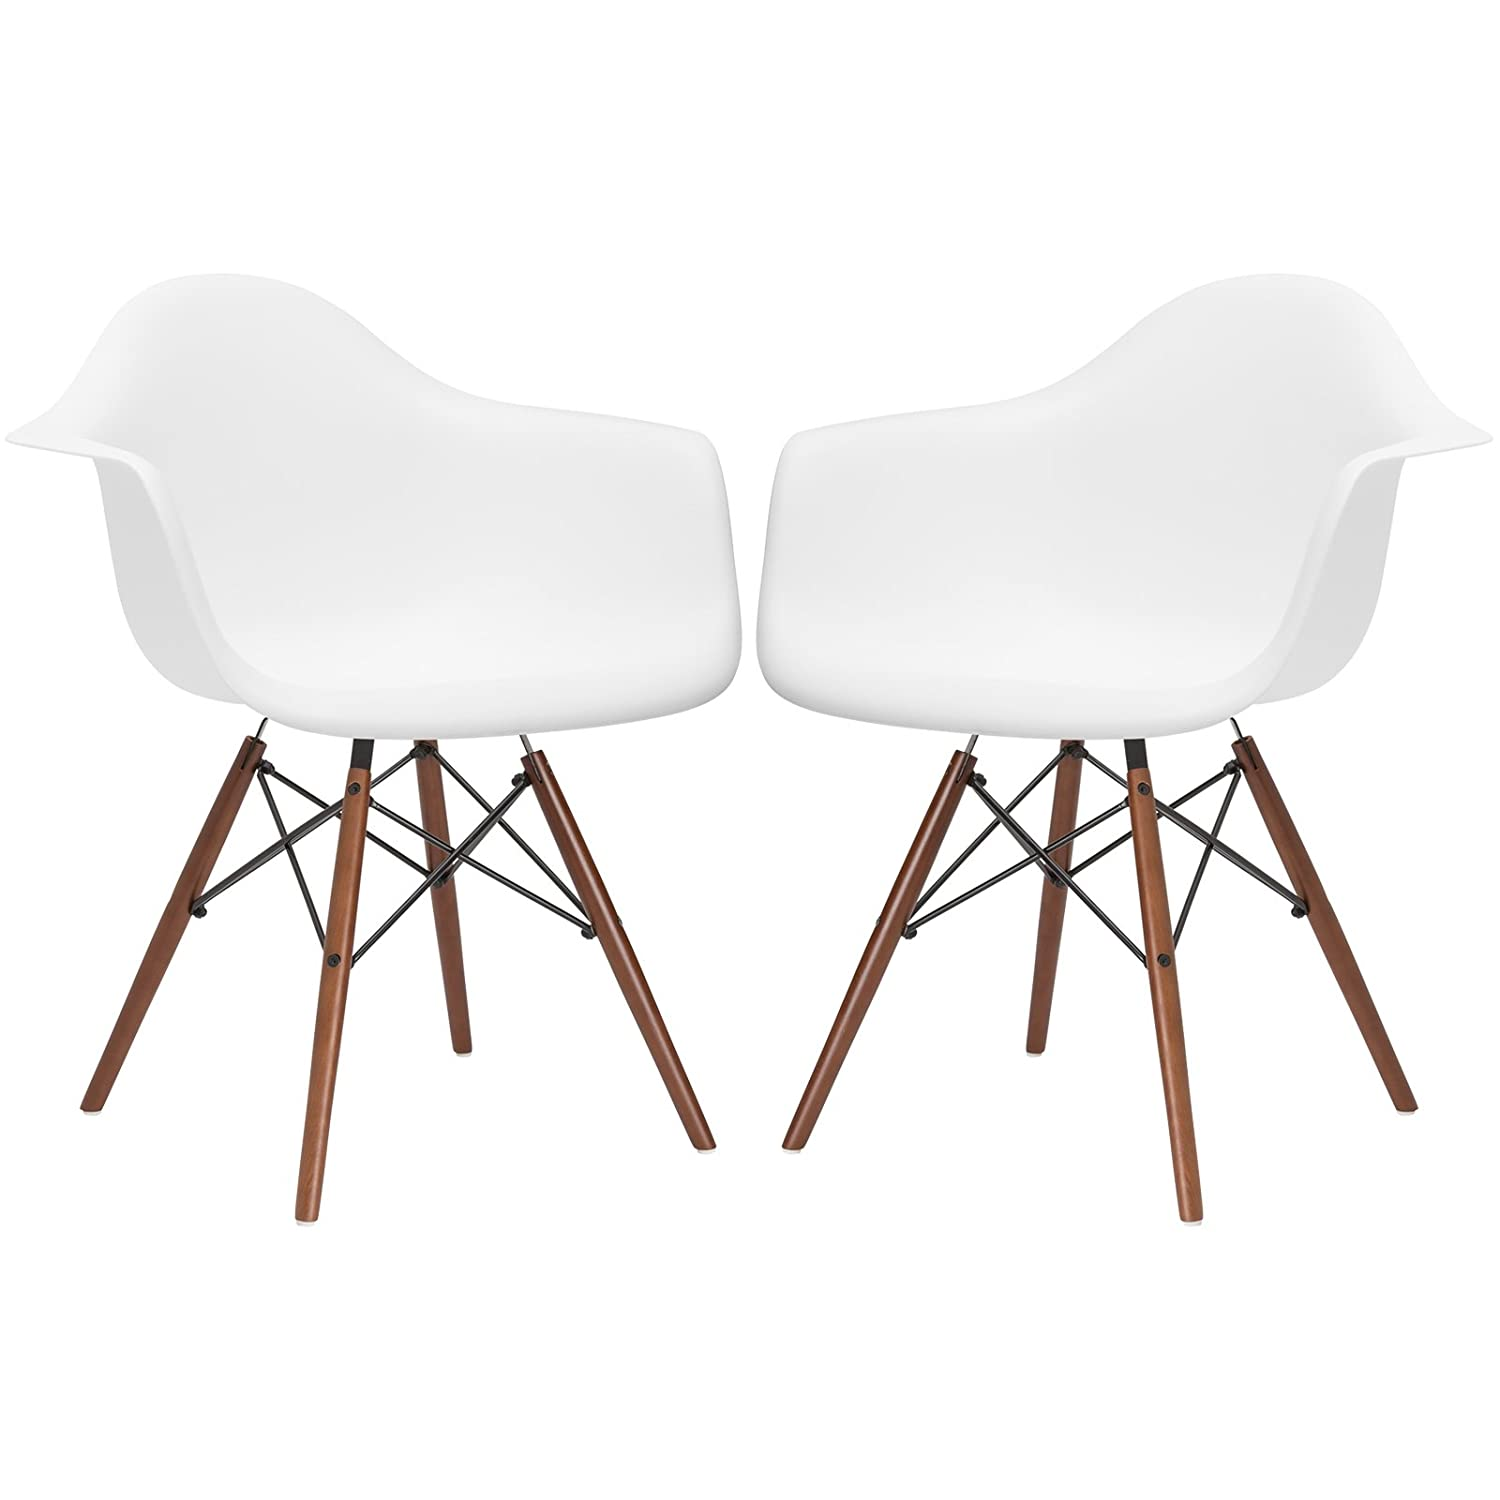 Poly and Bark Vortex Arm Chair Walnut Leg, White, Set of 2